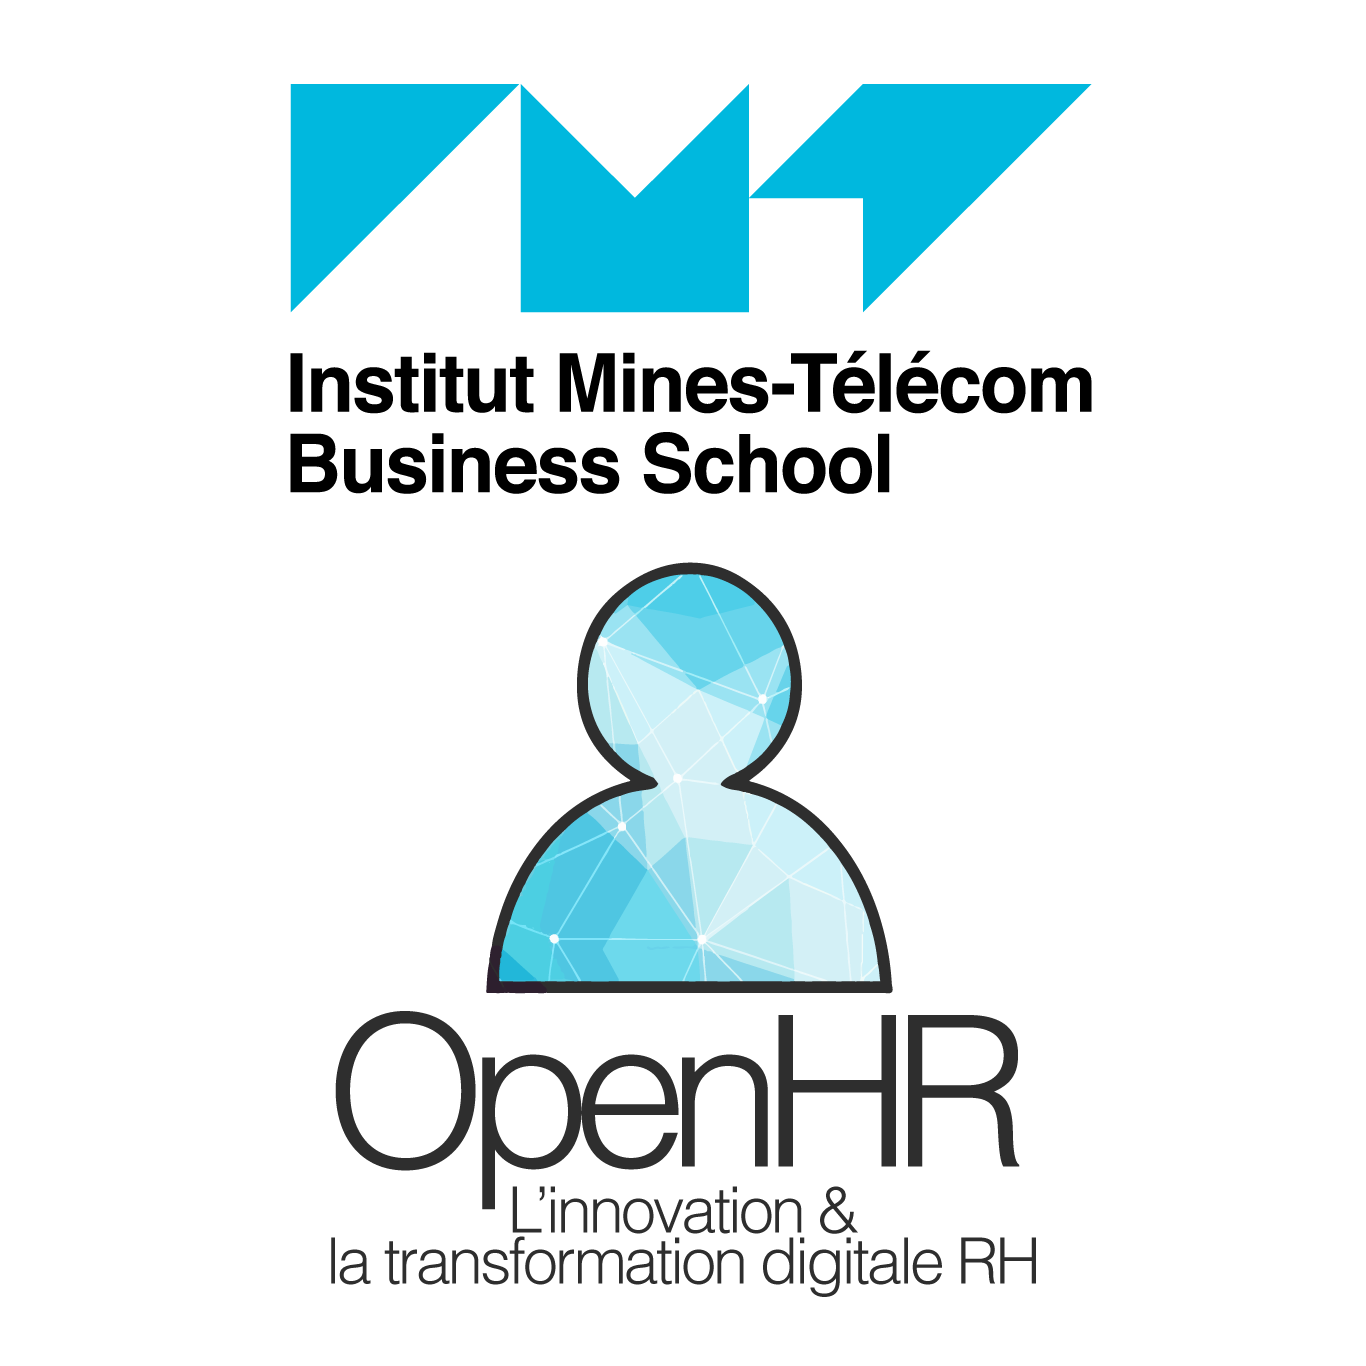 OpenHR - Projet d'open innovation RH de Institut Mines-Télécom Business School